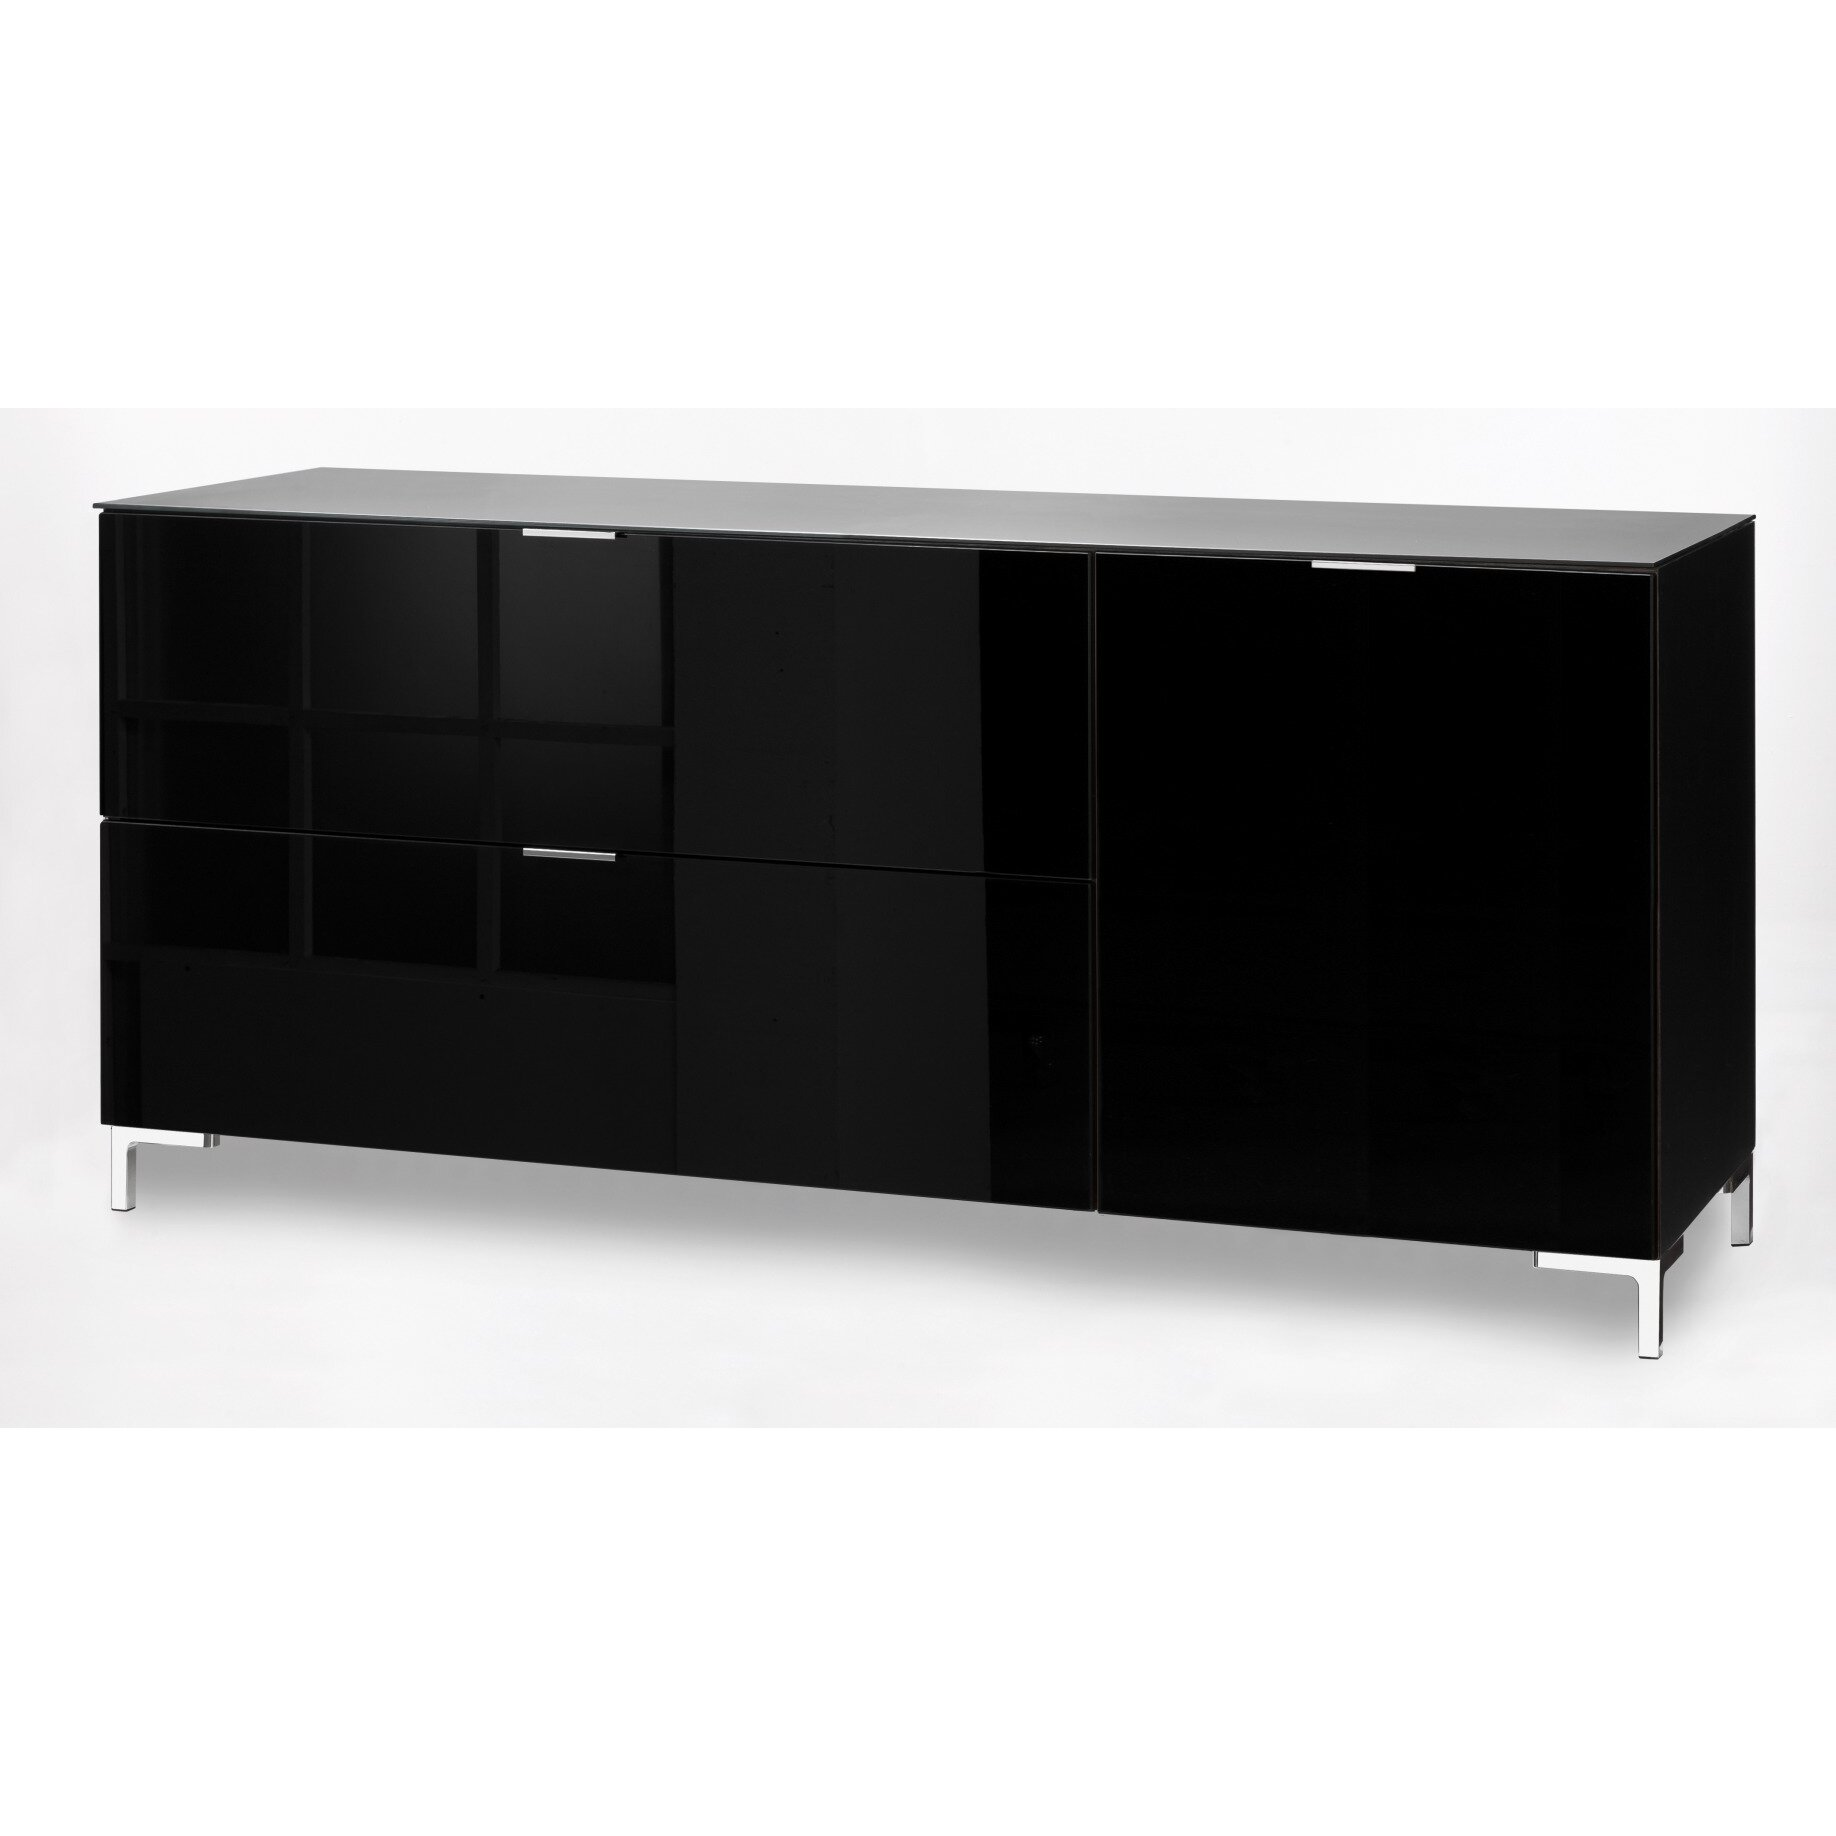 7 sparen cs schmal tv schrank cleo gro nur 419 99 cherry m bel wayfair. Black Bedroom Furniture Sets. Home Design Ideas